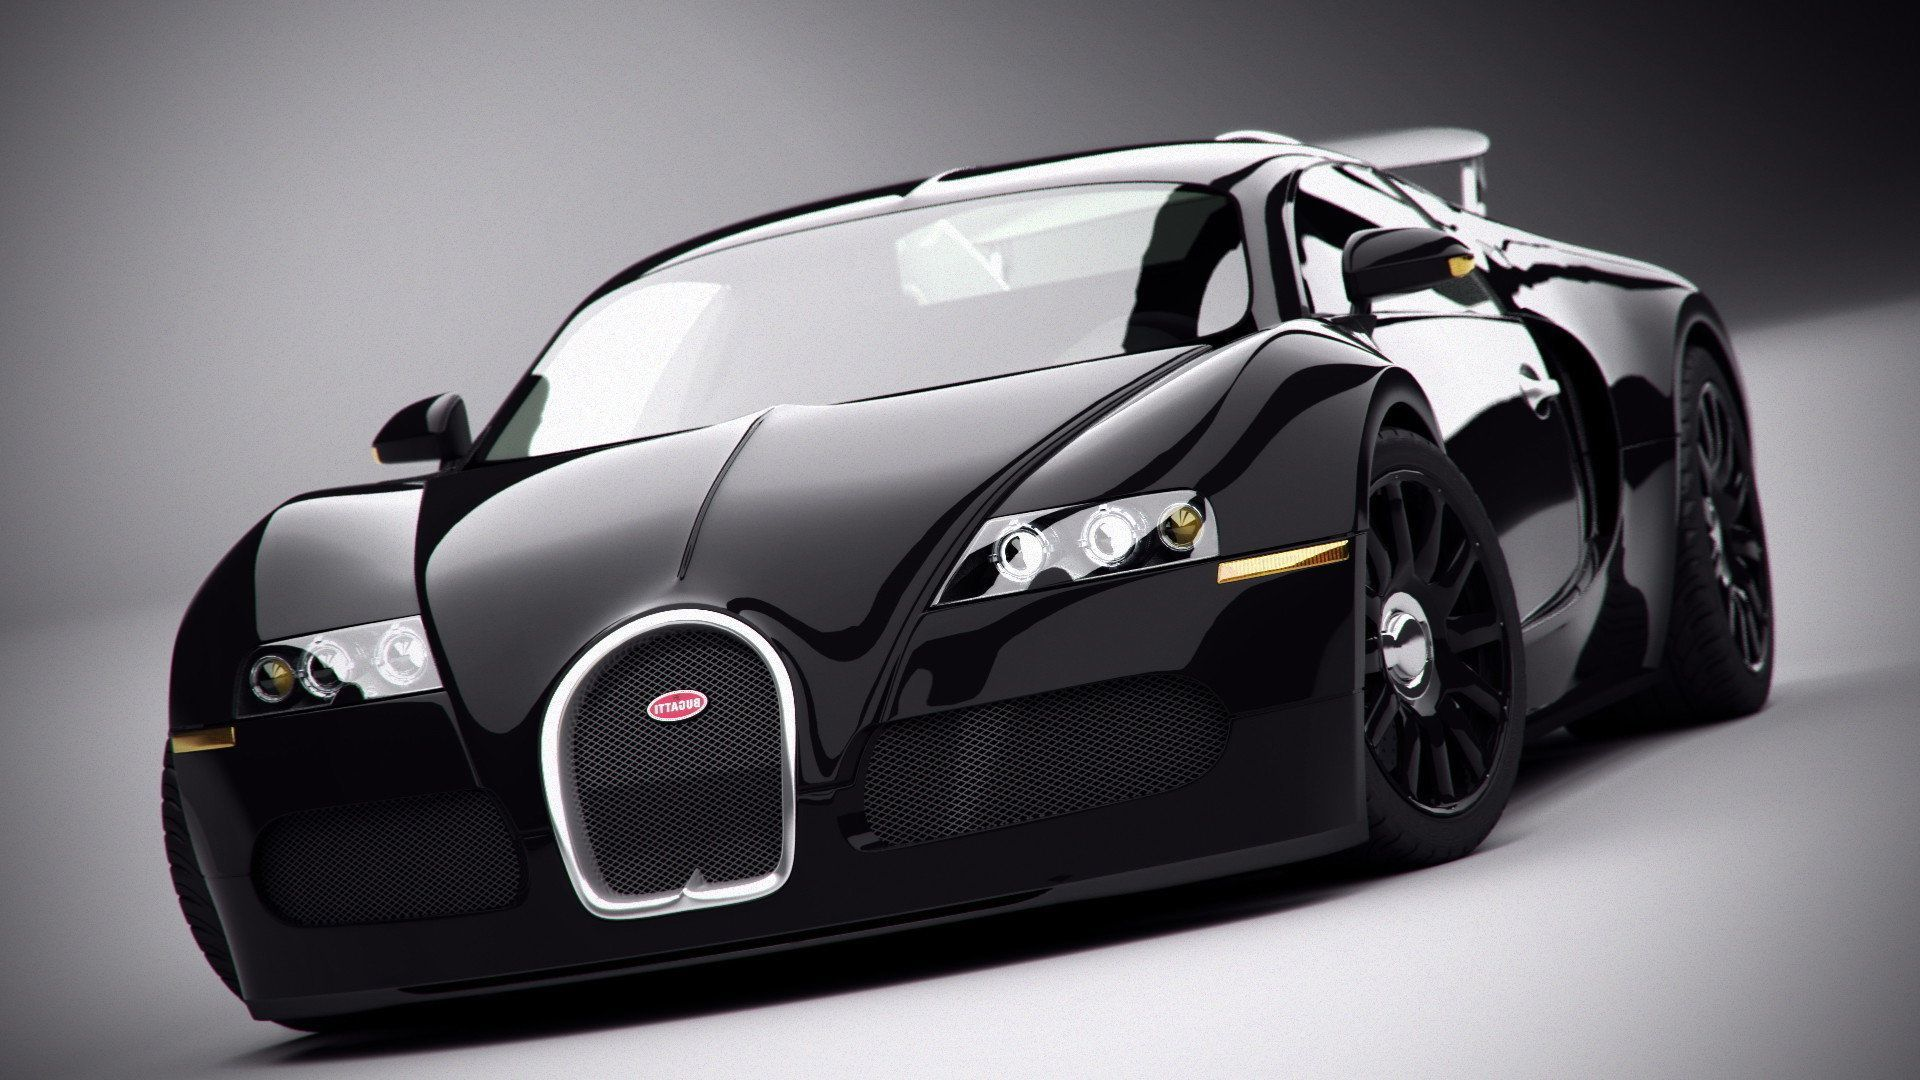 3dc38784717bb400274d8d382df85cd5 Cool Bugatti Veyron Price In Uae 2015 Cars Trend